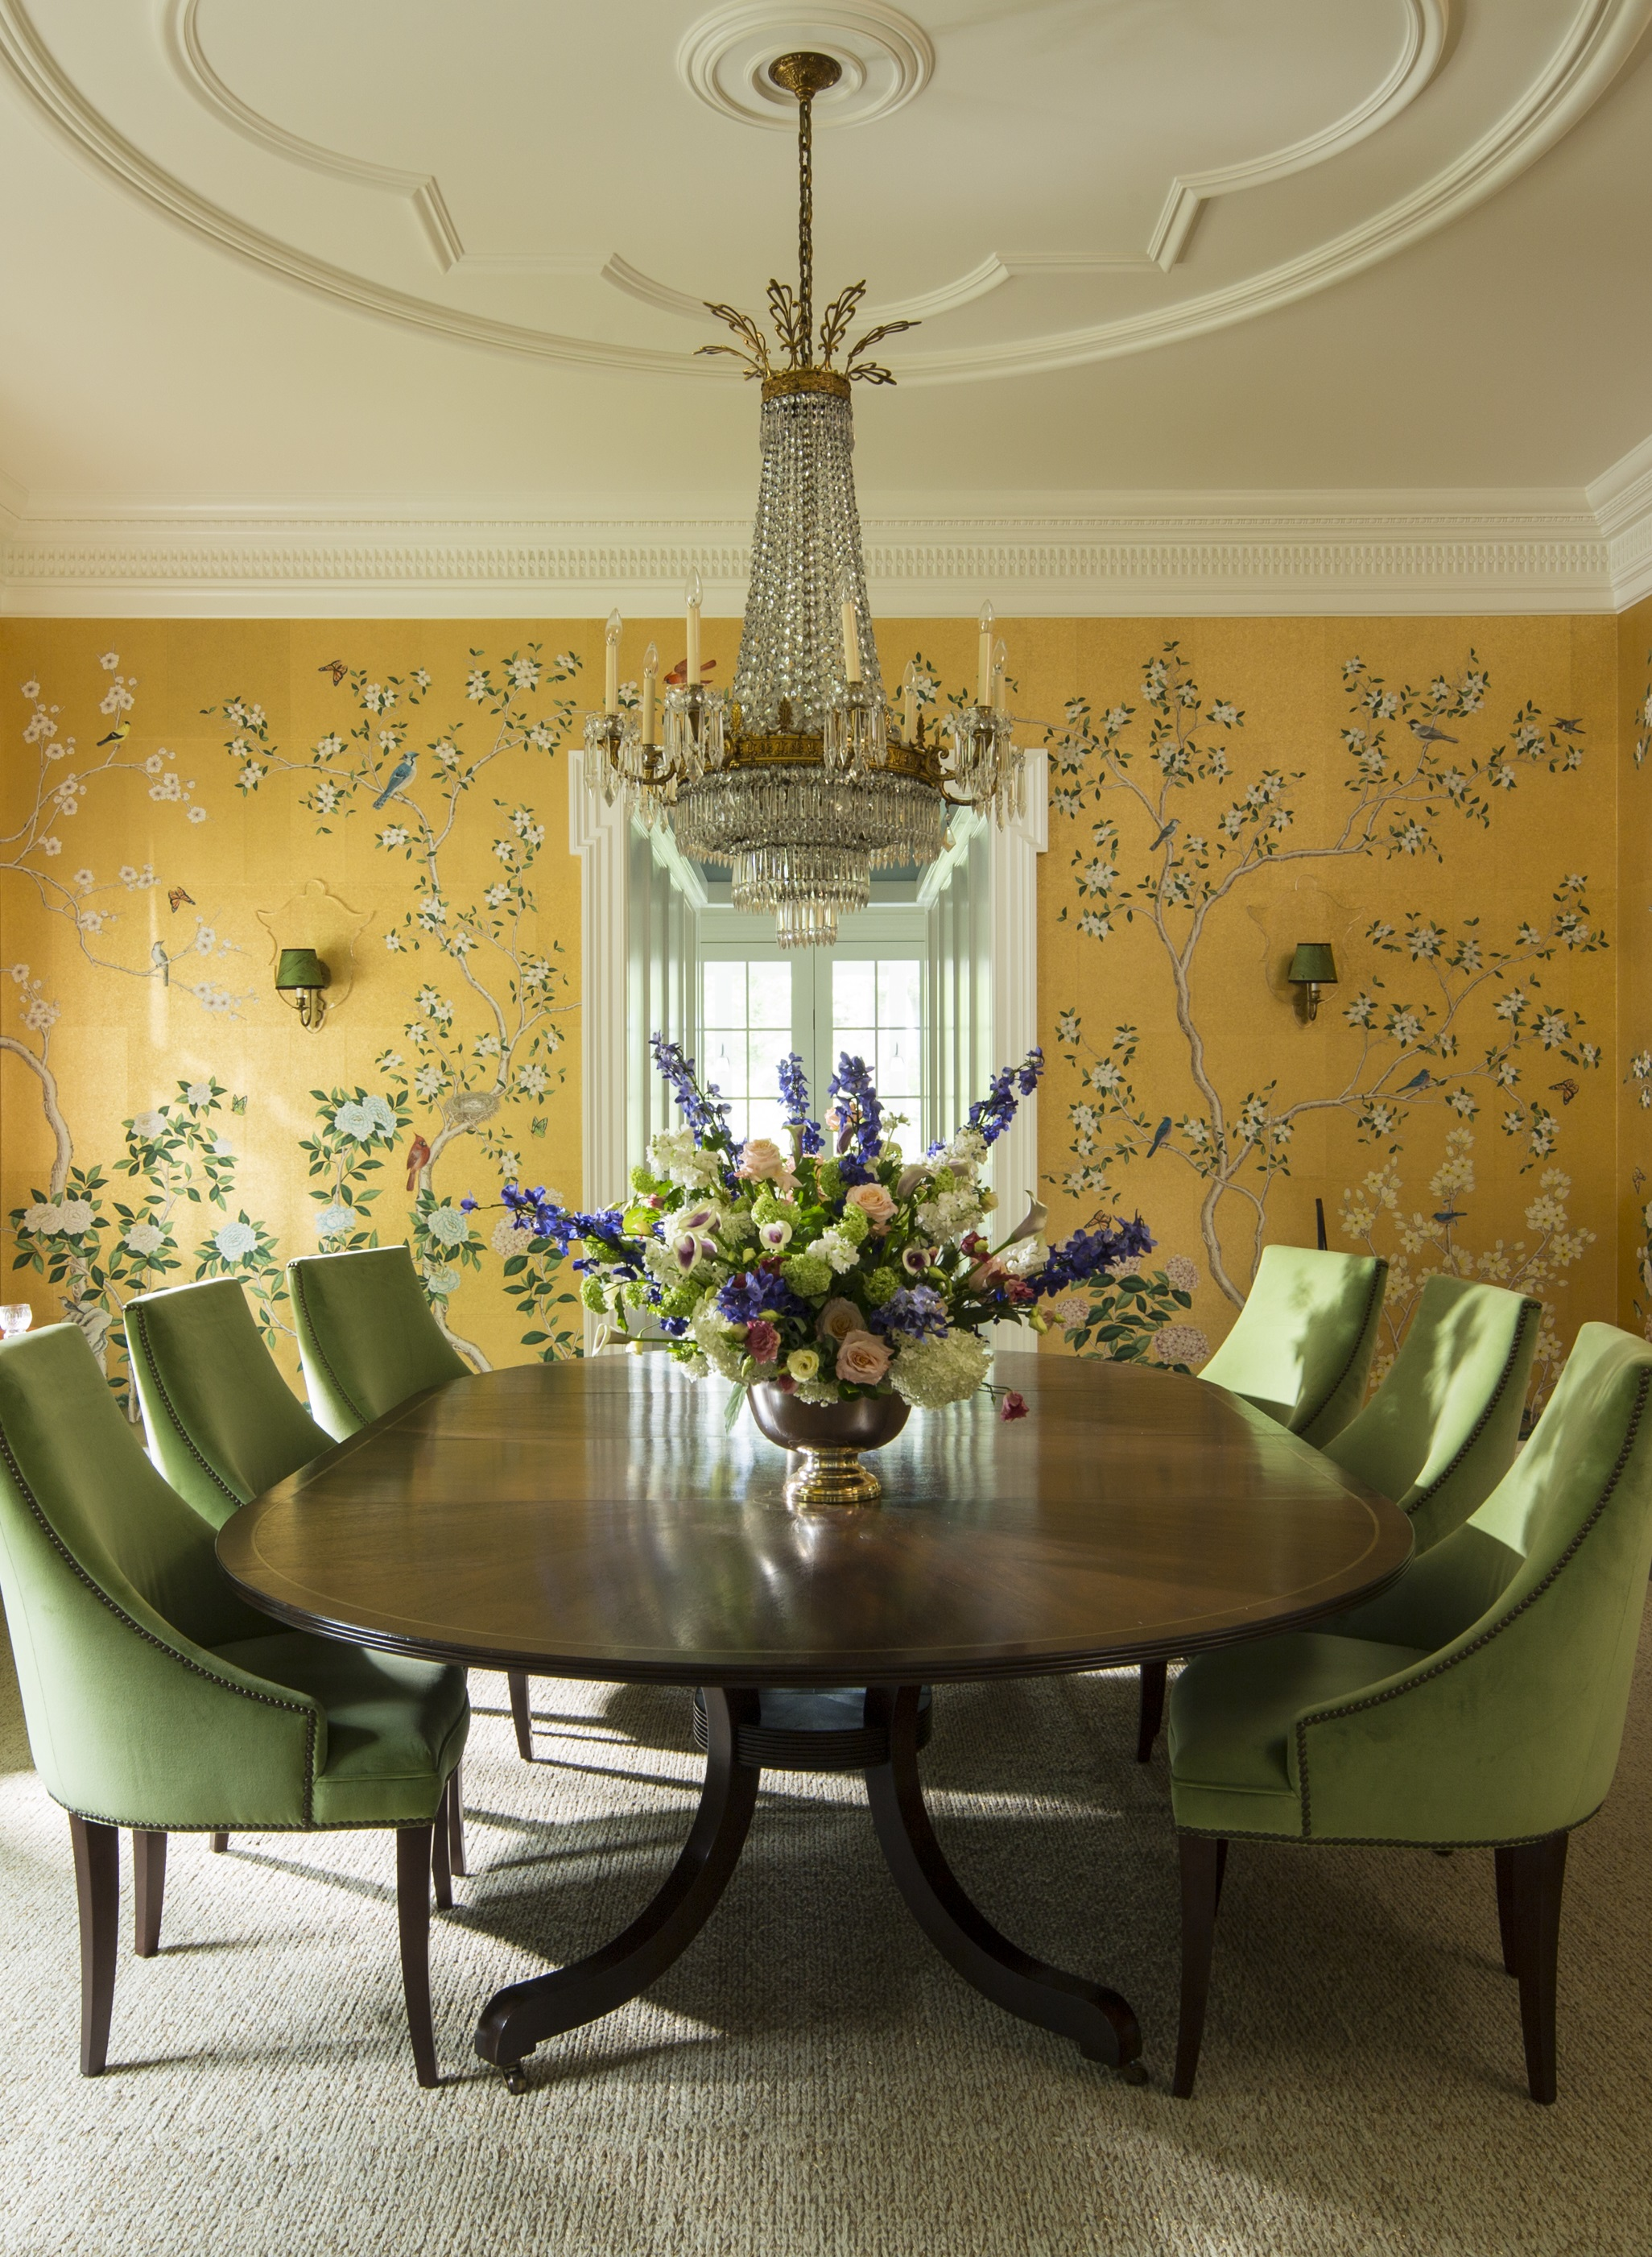 Wallpaper Murals Used To Be A Major Splurge But New Tech Is